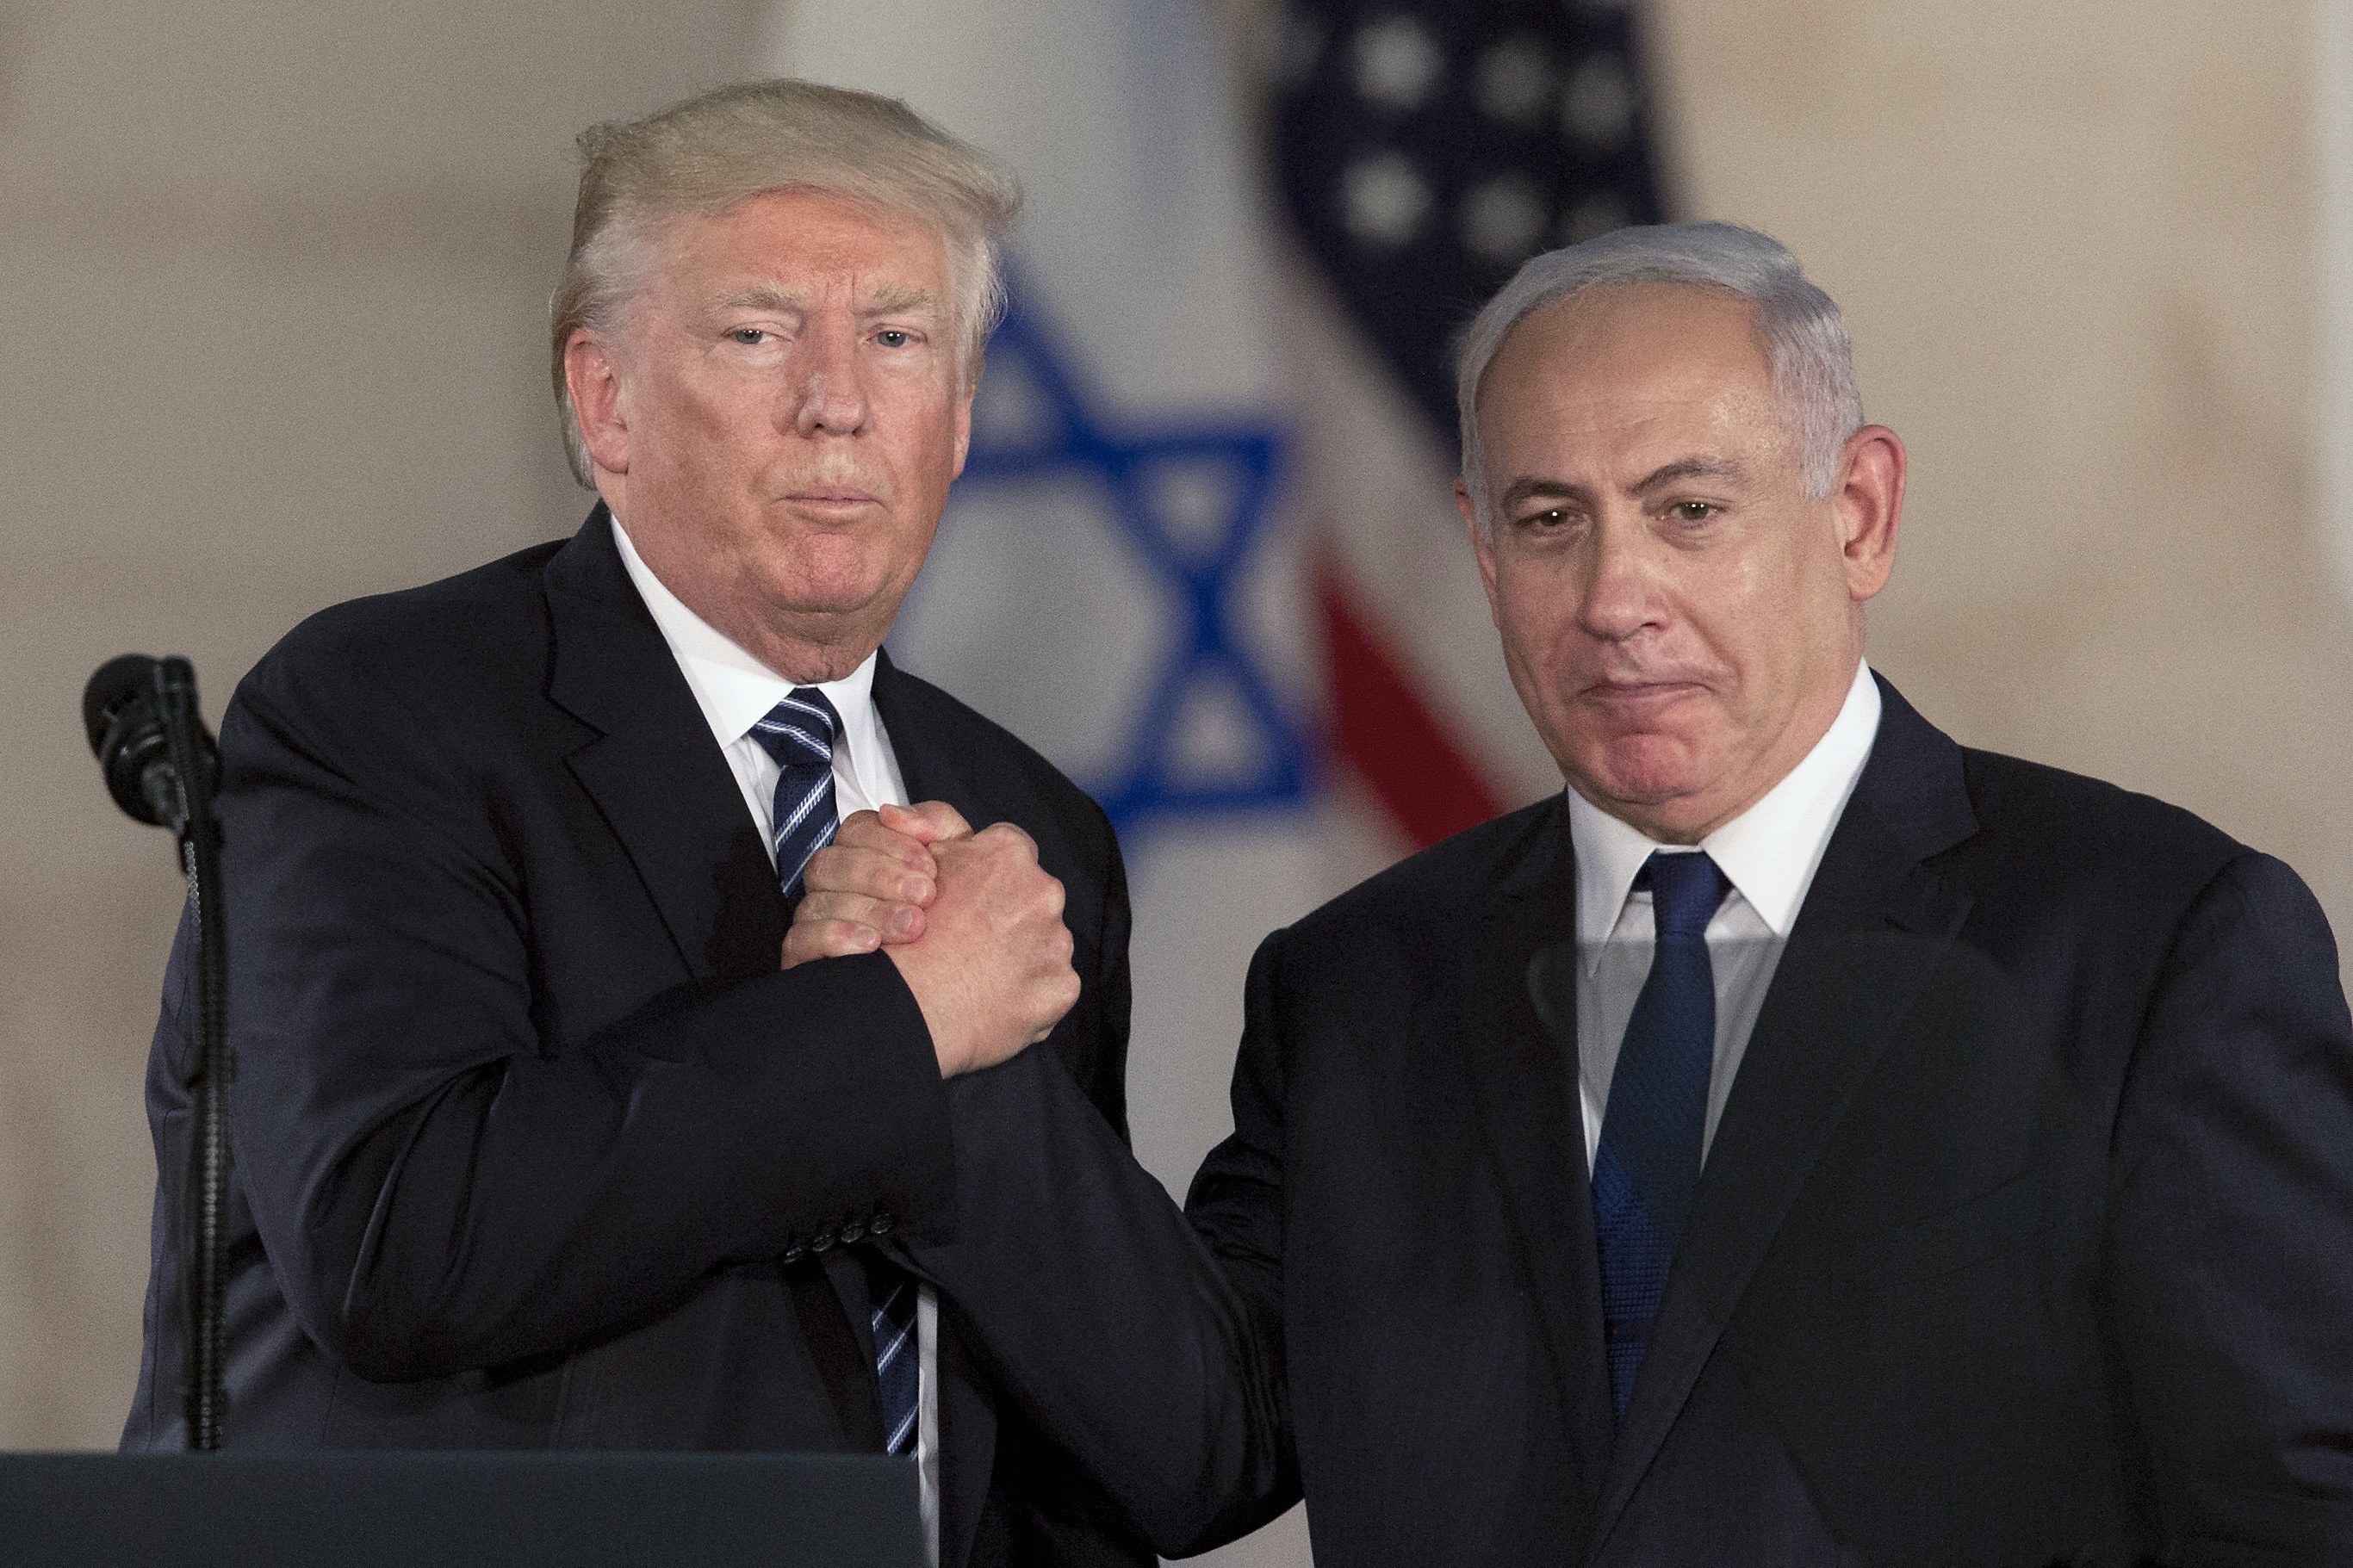 Prime Minister Benjamin Netanyahu, right, and US President Donald Trump  shake hands at the